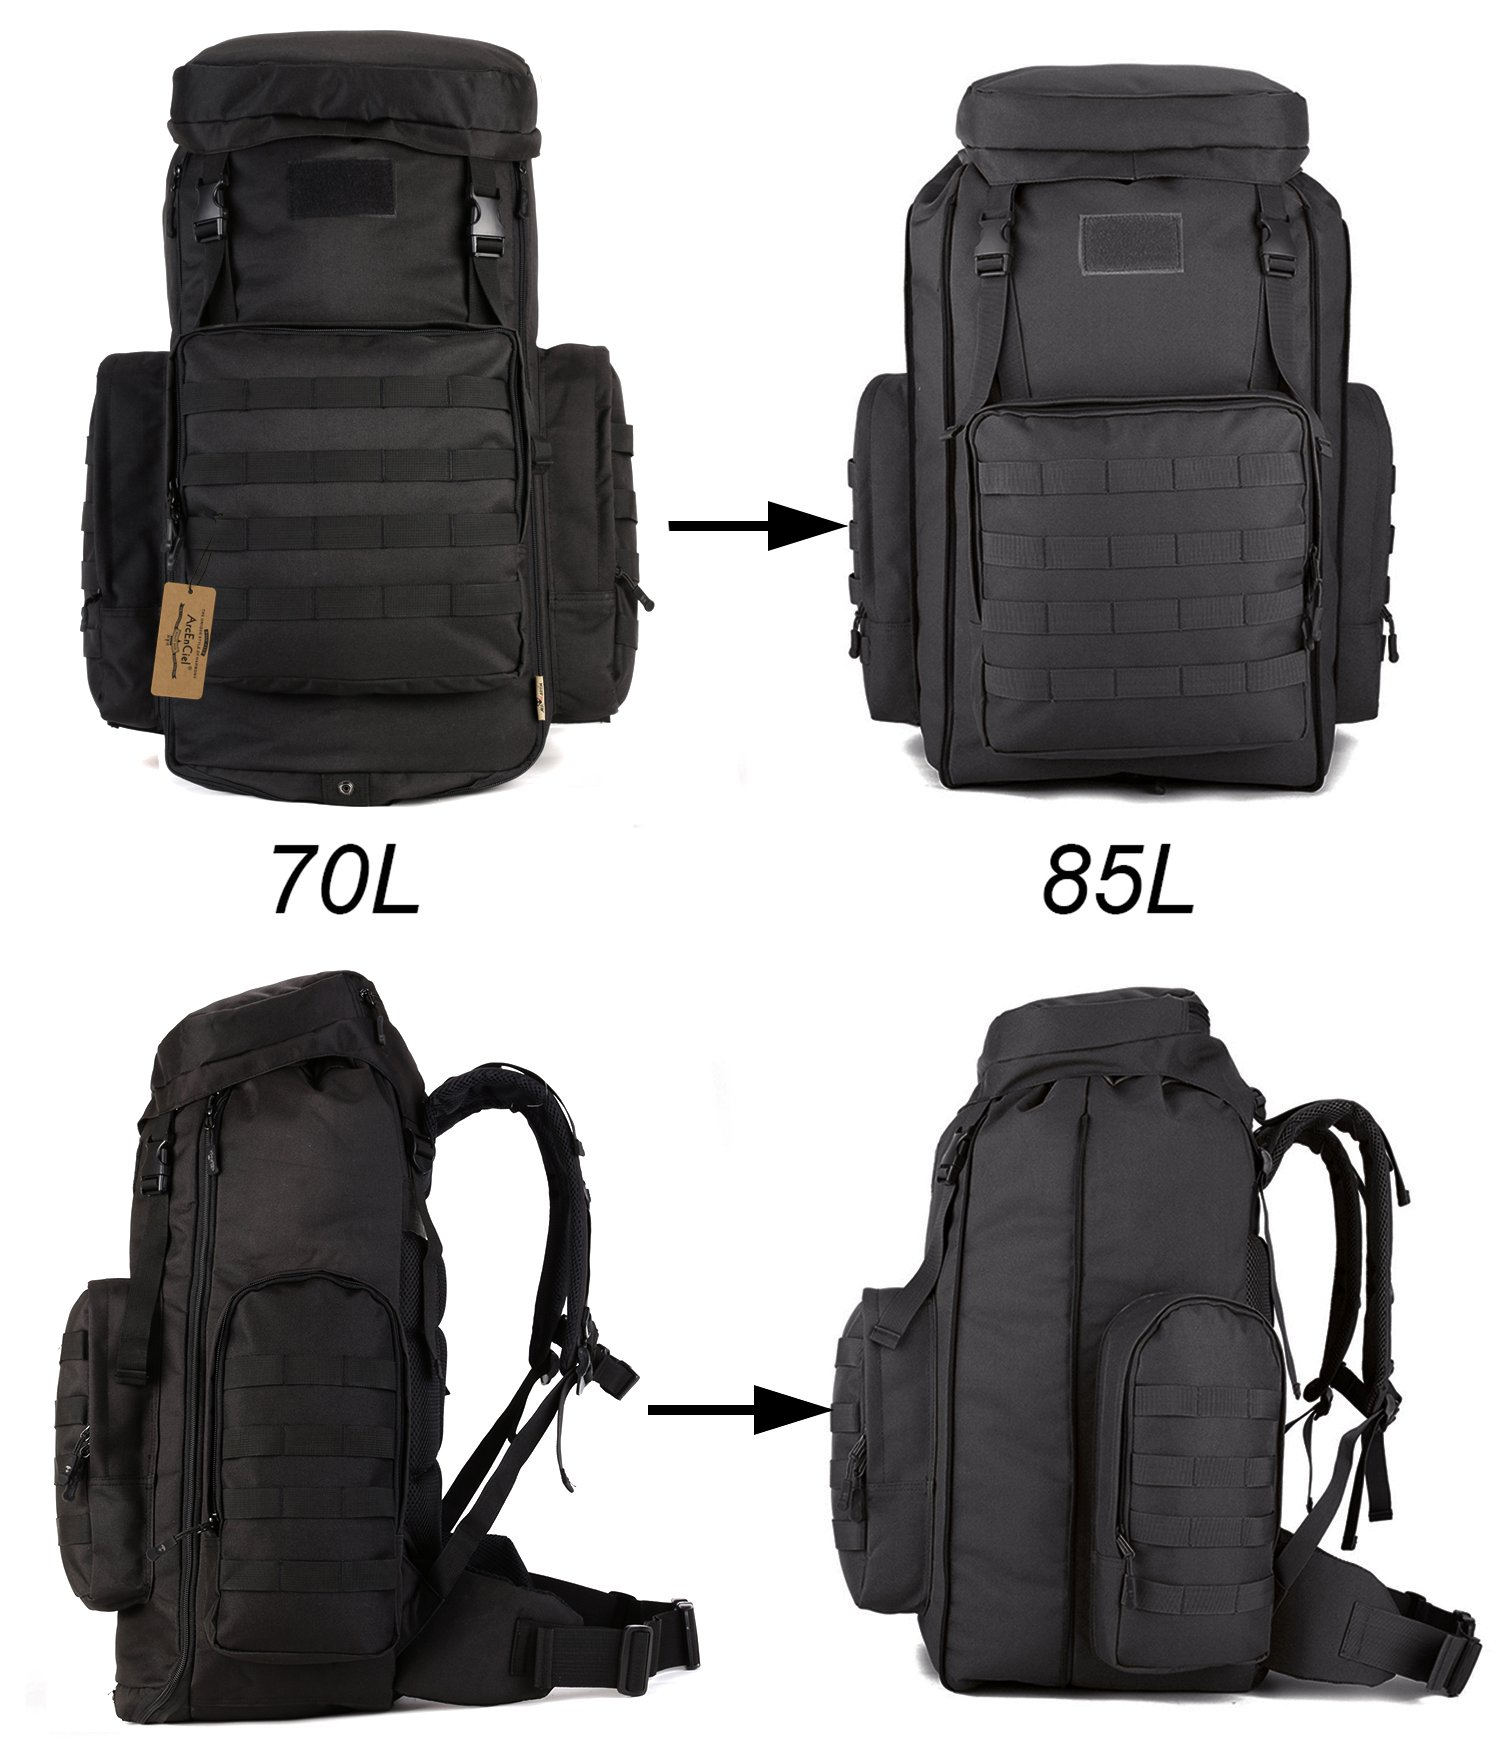 ArcEnCiel 70-85L Large Capacity Tactical Travel Backpack MOLLE Rucksack Outdoor Travel Bag for Travelling Trekking Camping Hiking Hunting -Rain Cover Included (Black) by ArcEnCiel (Image #8)